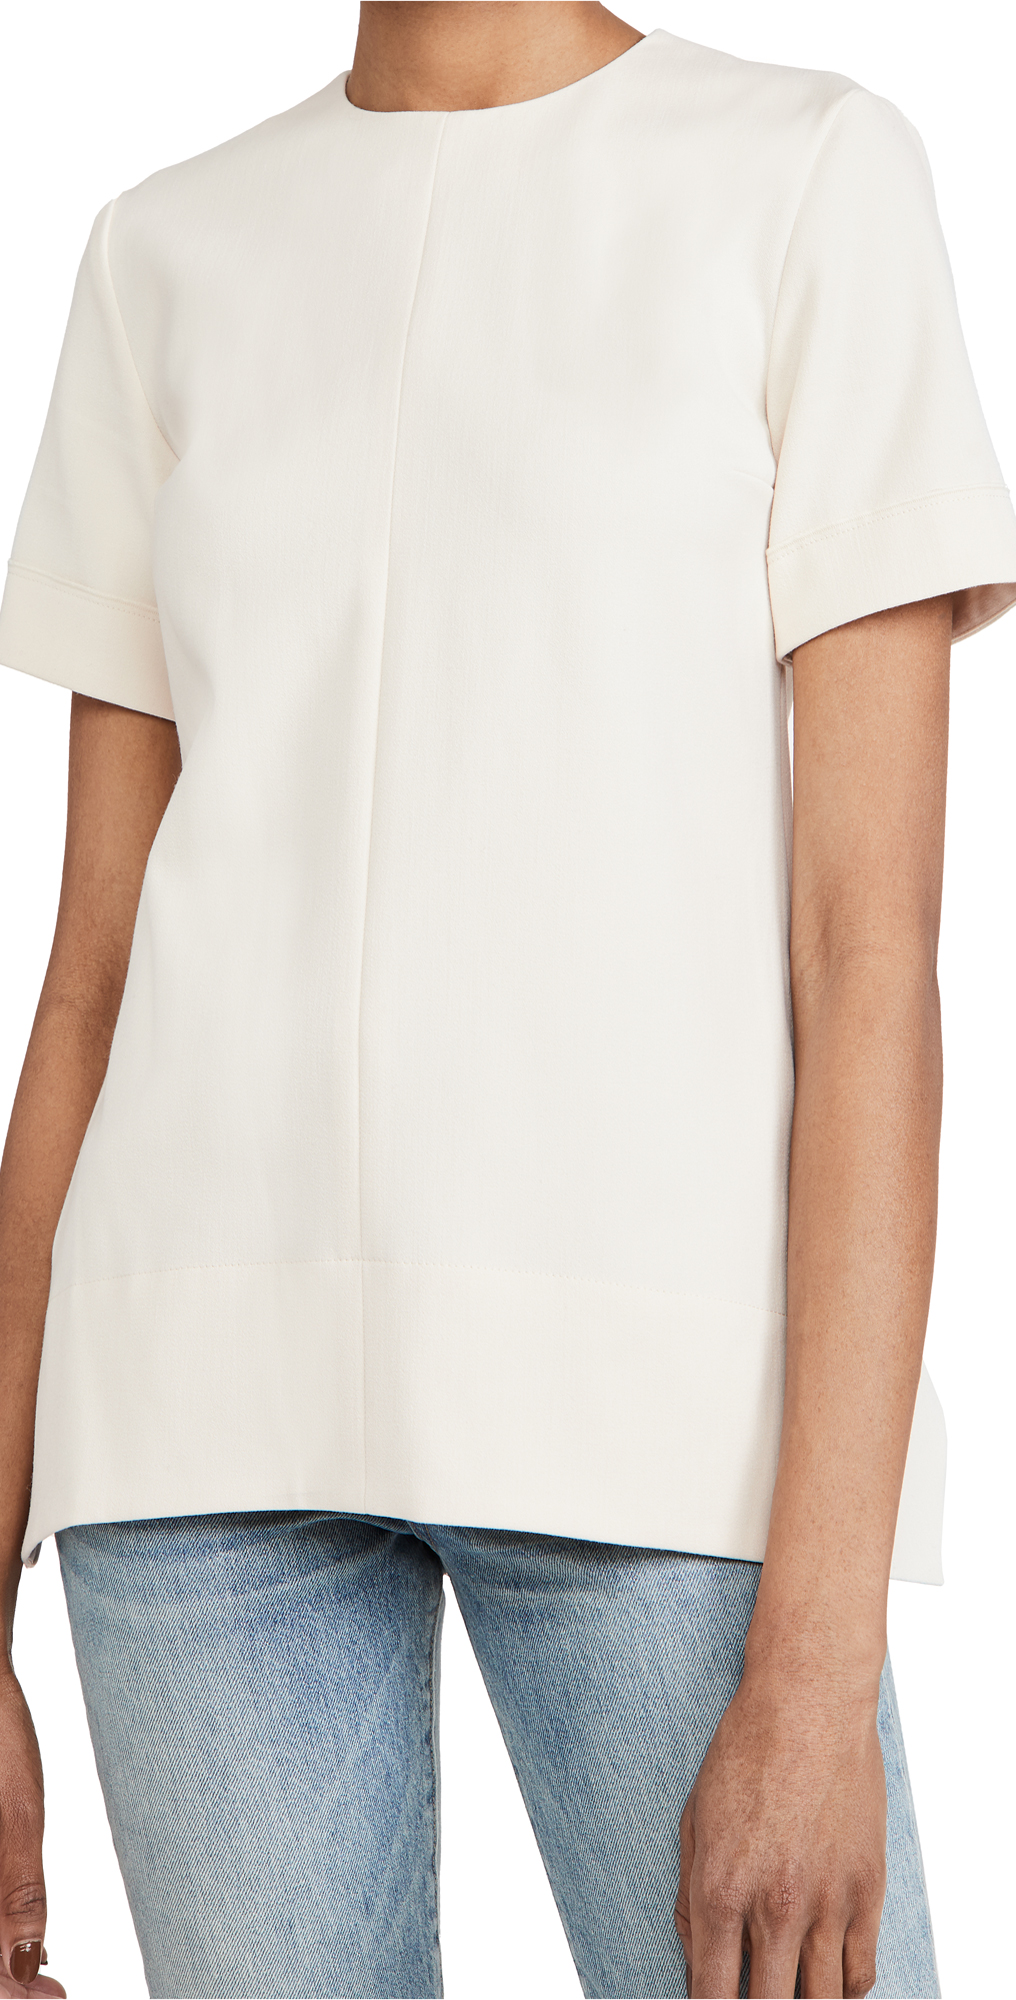 Victoria Victoria Beckham Short Sleeve Lightweight Stretch Top